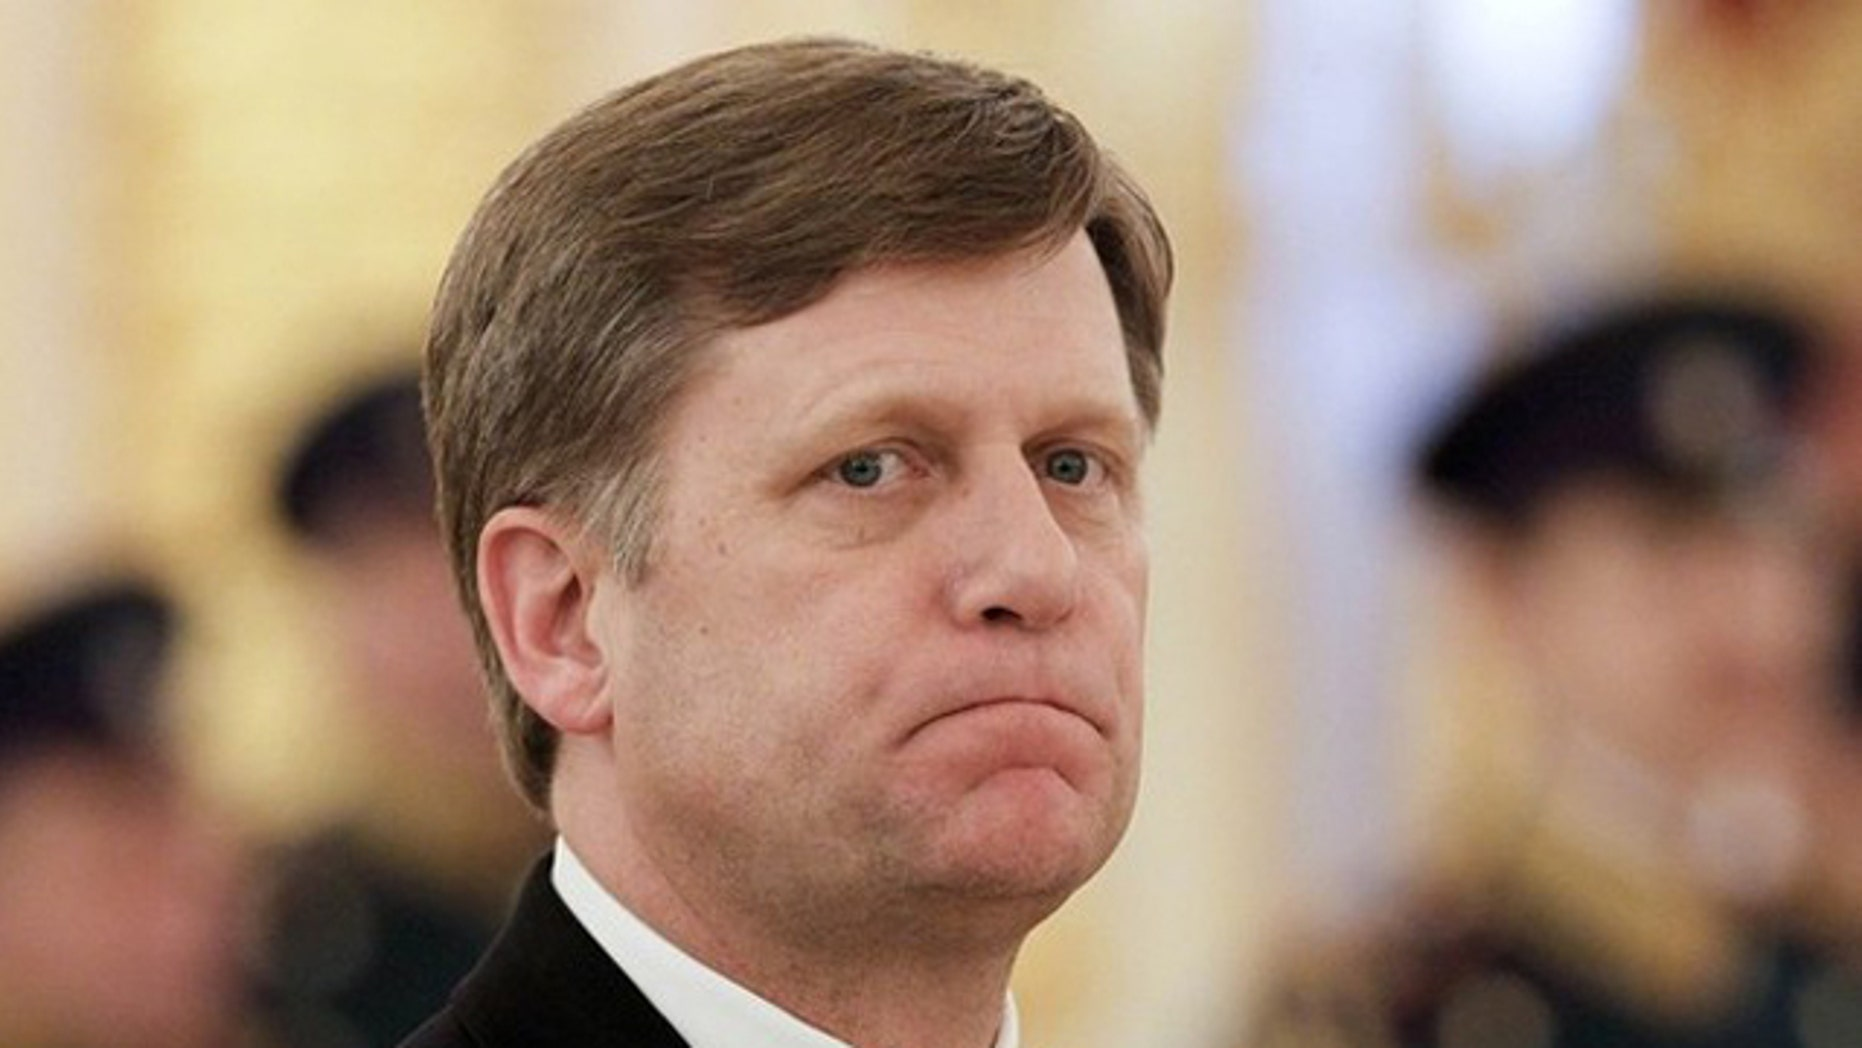 Feb. 22, 2012: American Ambassador to Russia Michael McFaul looks on during an official ceremony to present his diplomatic credentials in Moscow's Kremlin.